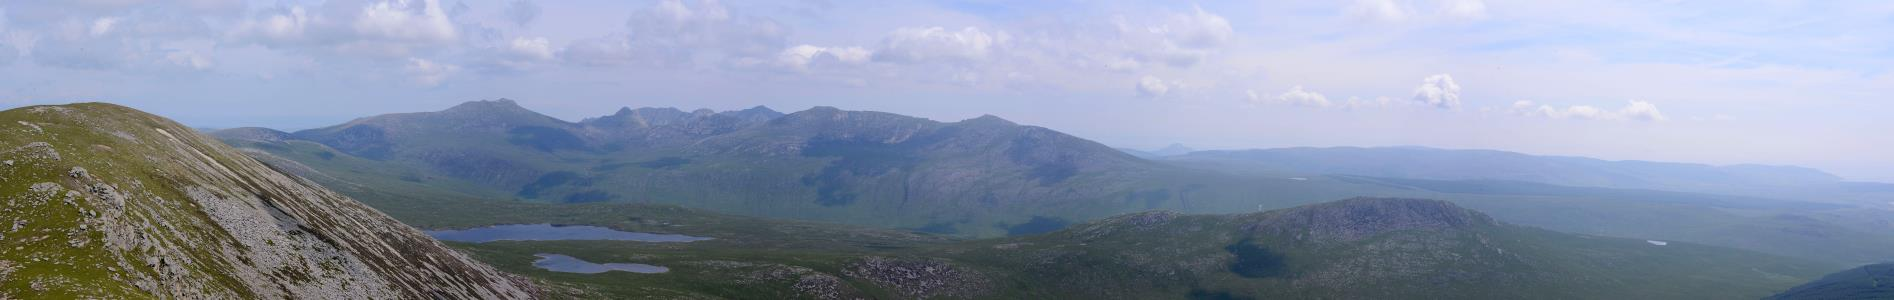 Name: View East from , Beinn Bharrain, Arran Camera make:  Model:  Software: Microsoft ICE v1.4.4.0